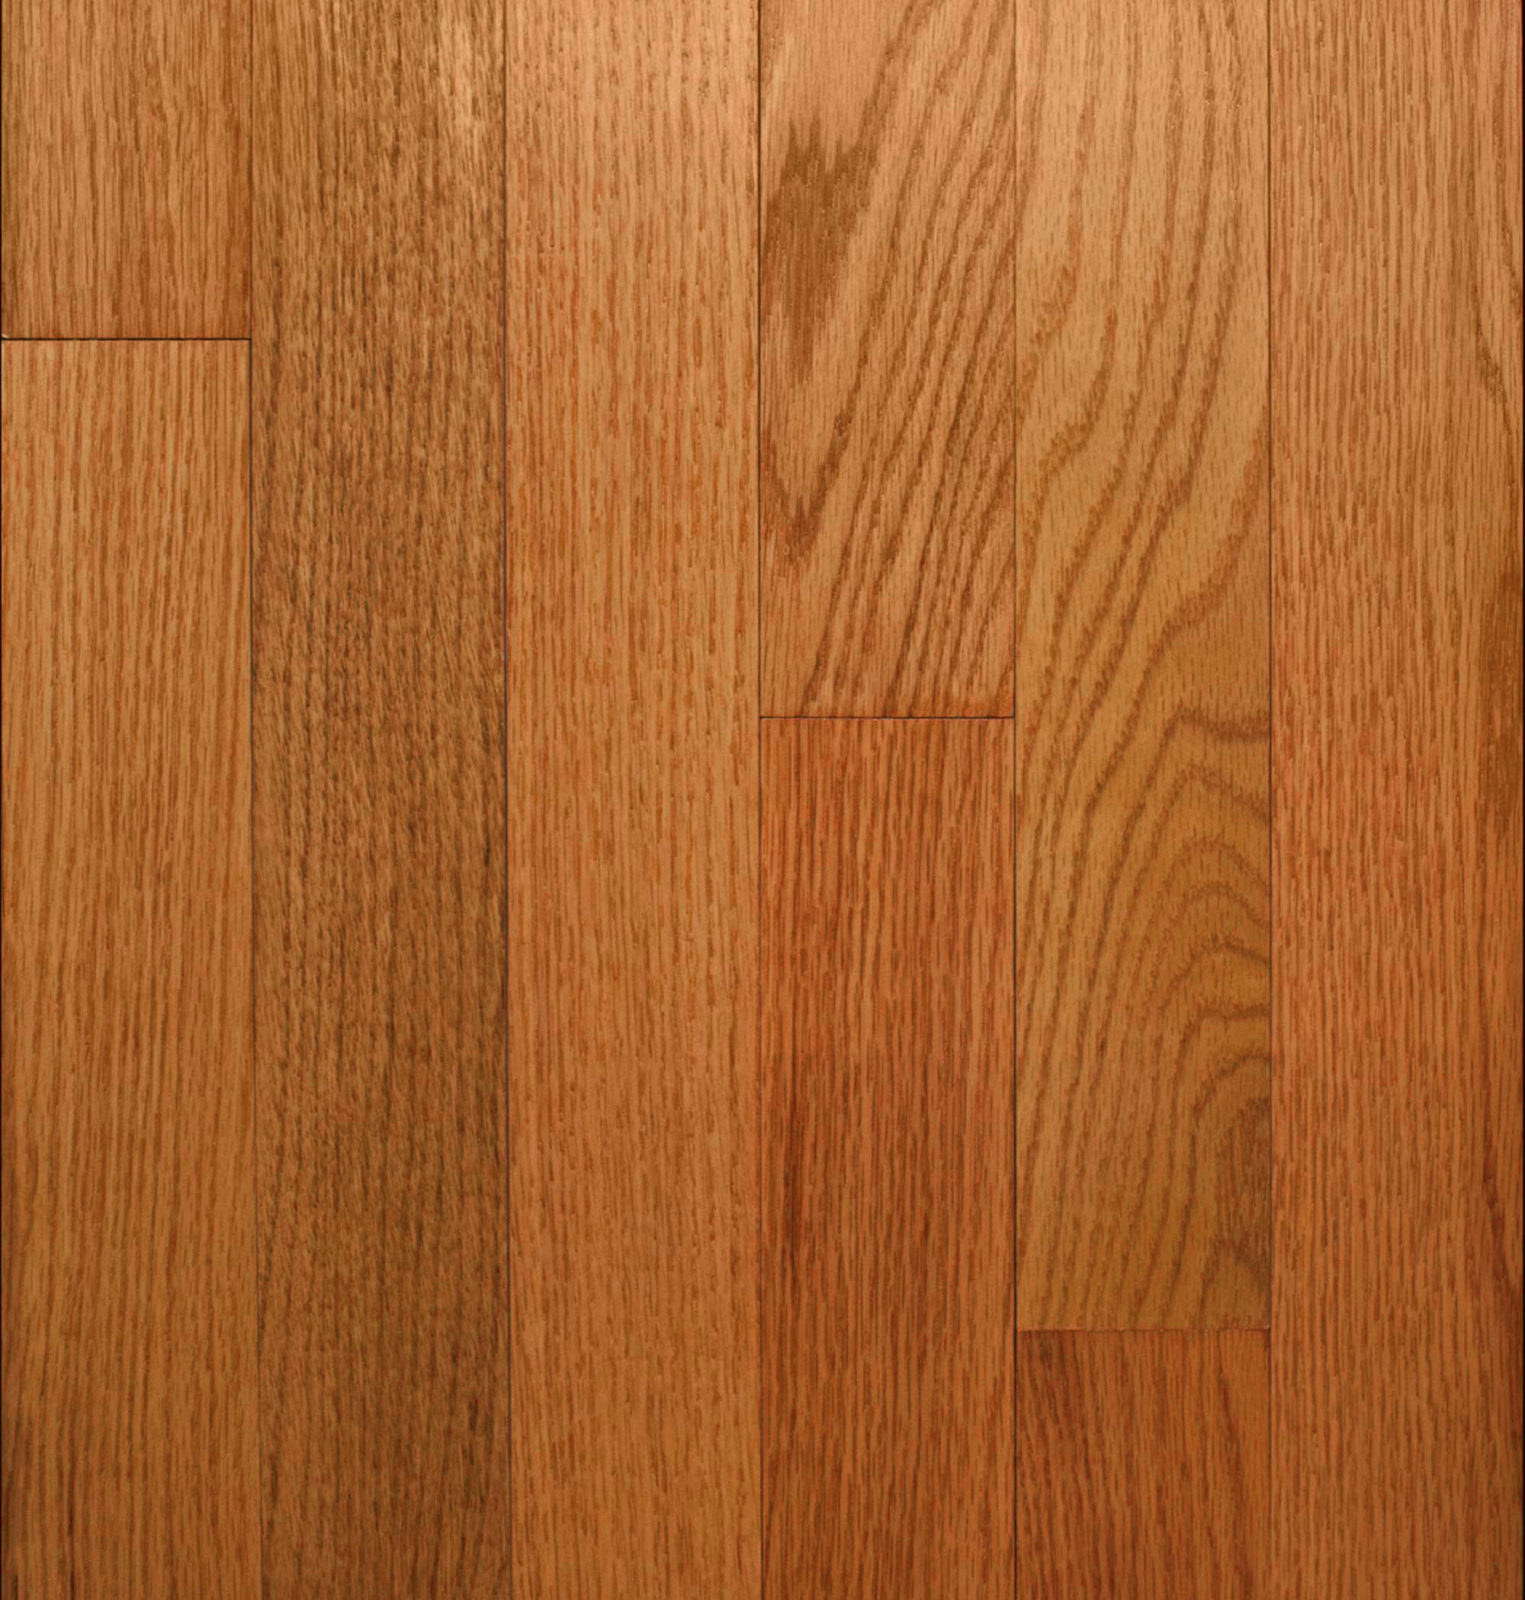 2 1 4 x 3 4 mohawk red oak butterscotch schillings for Red oak hardwood flooring